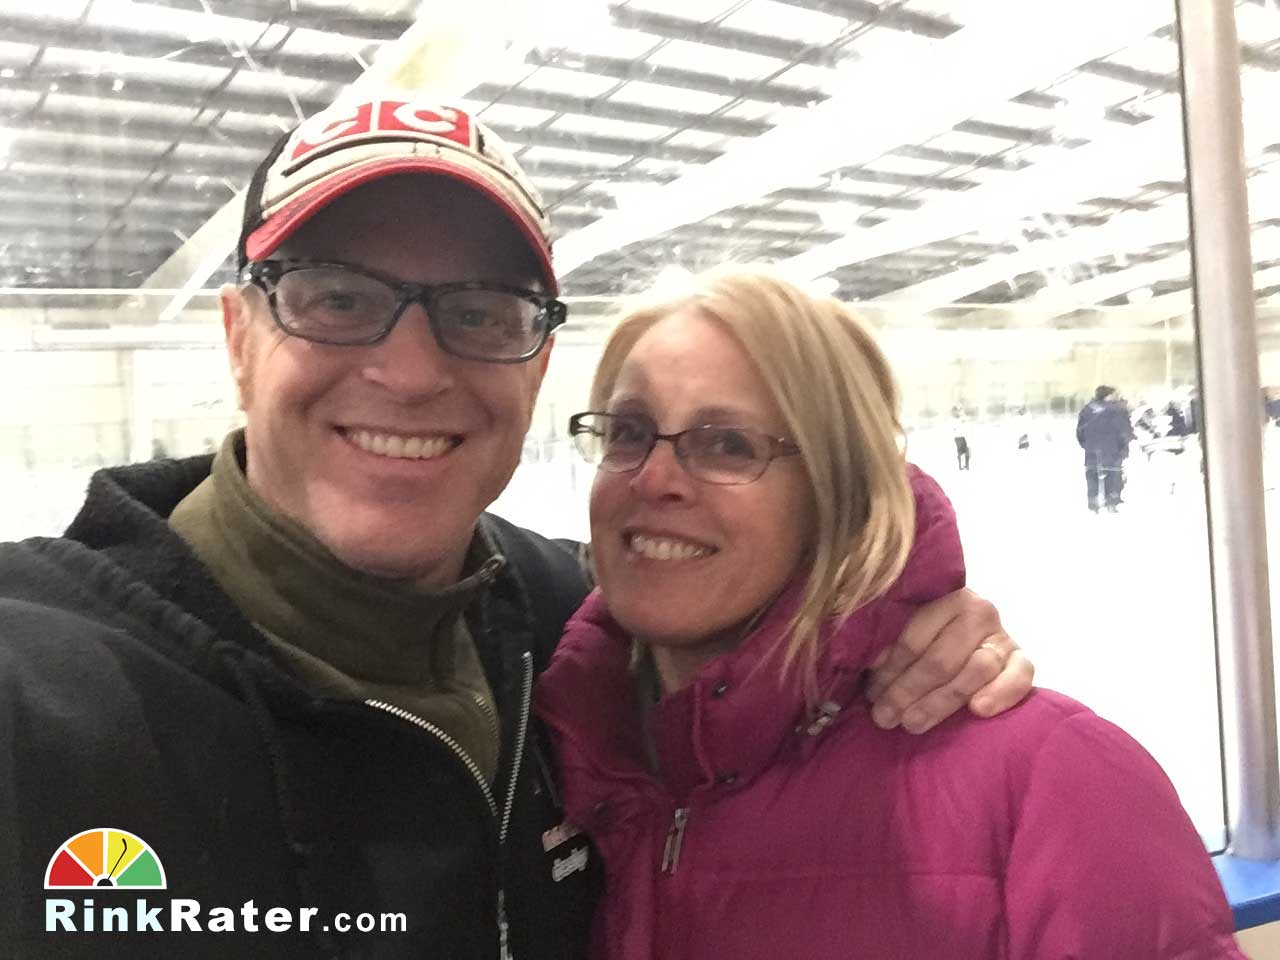 Rink Rater